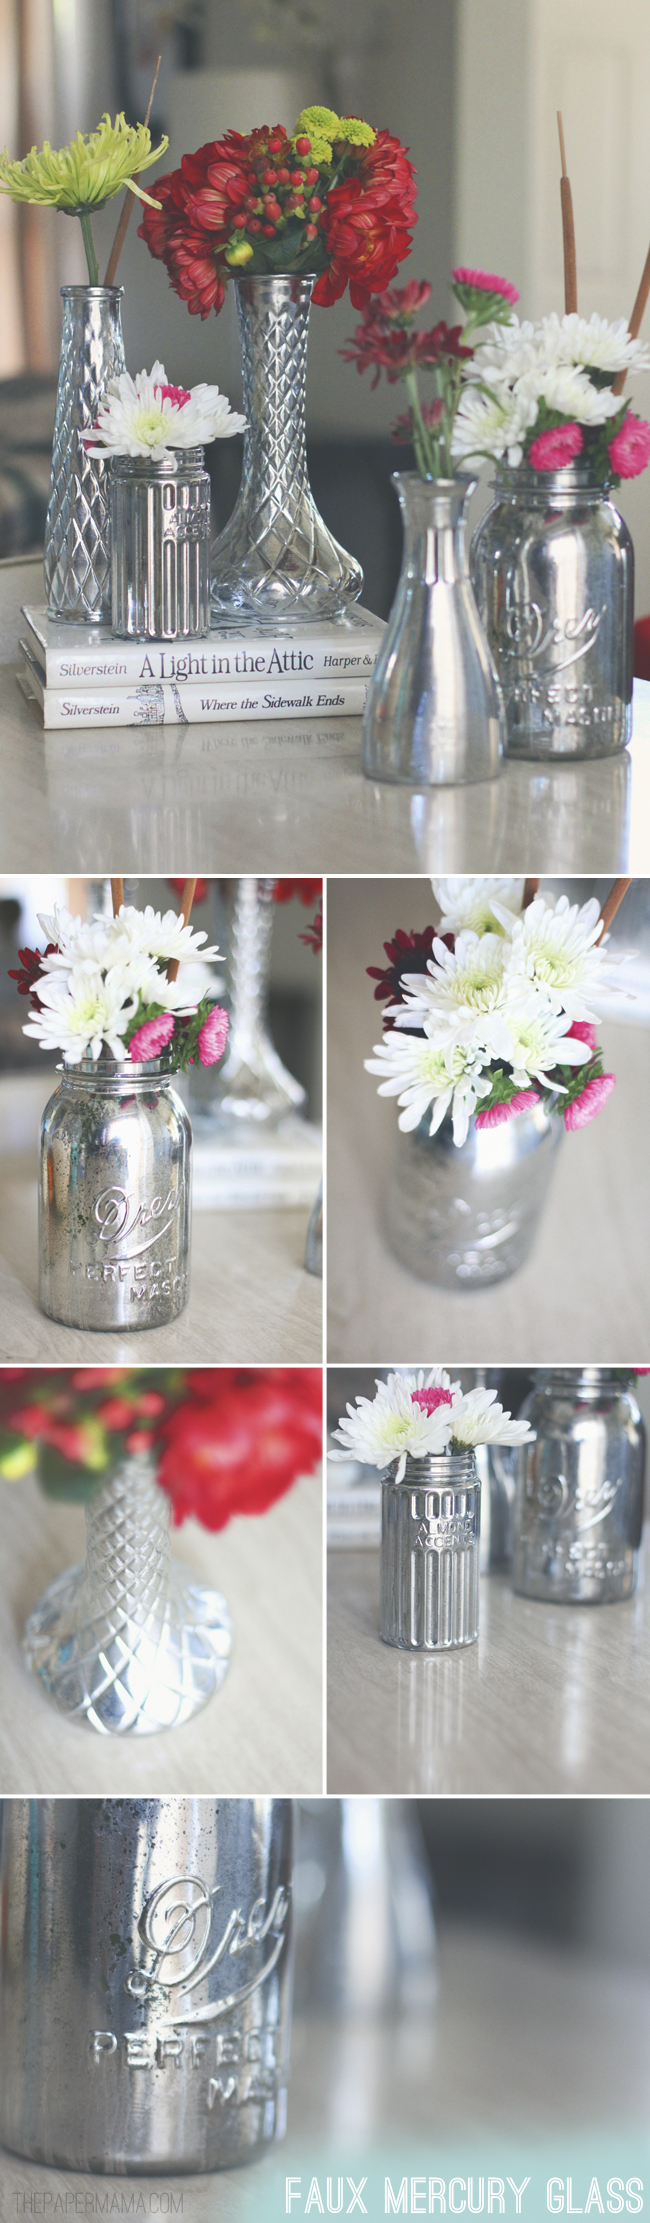 Faux Mercury Glass Vases